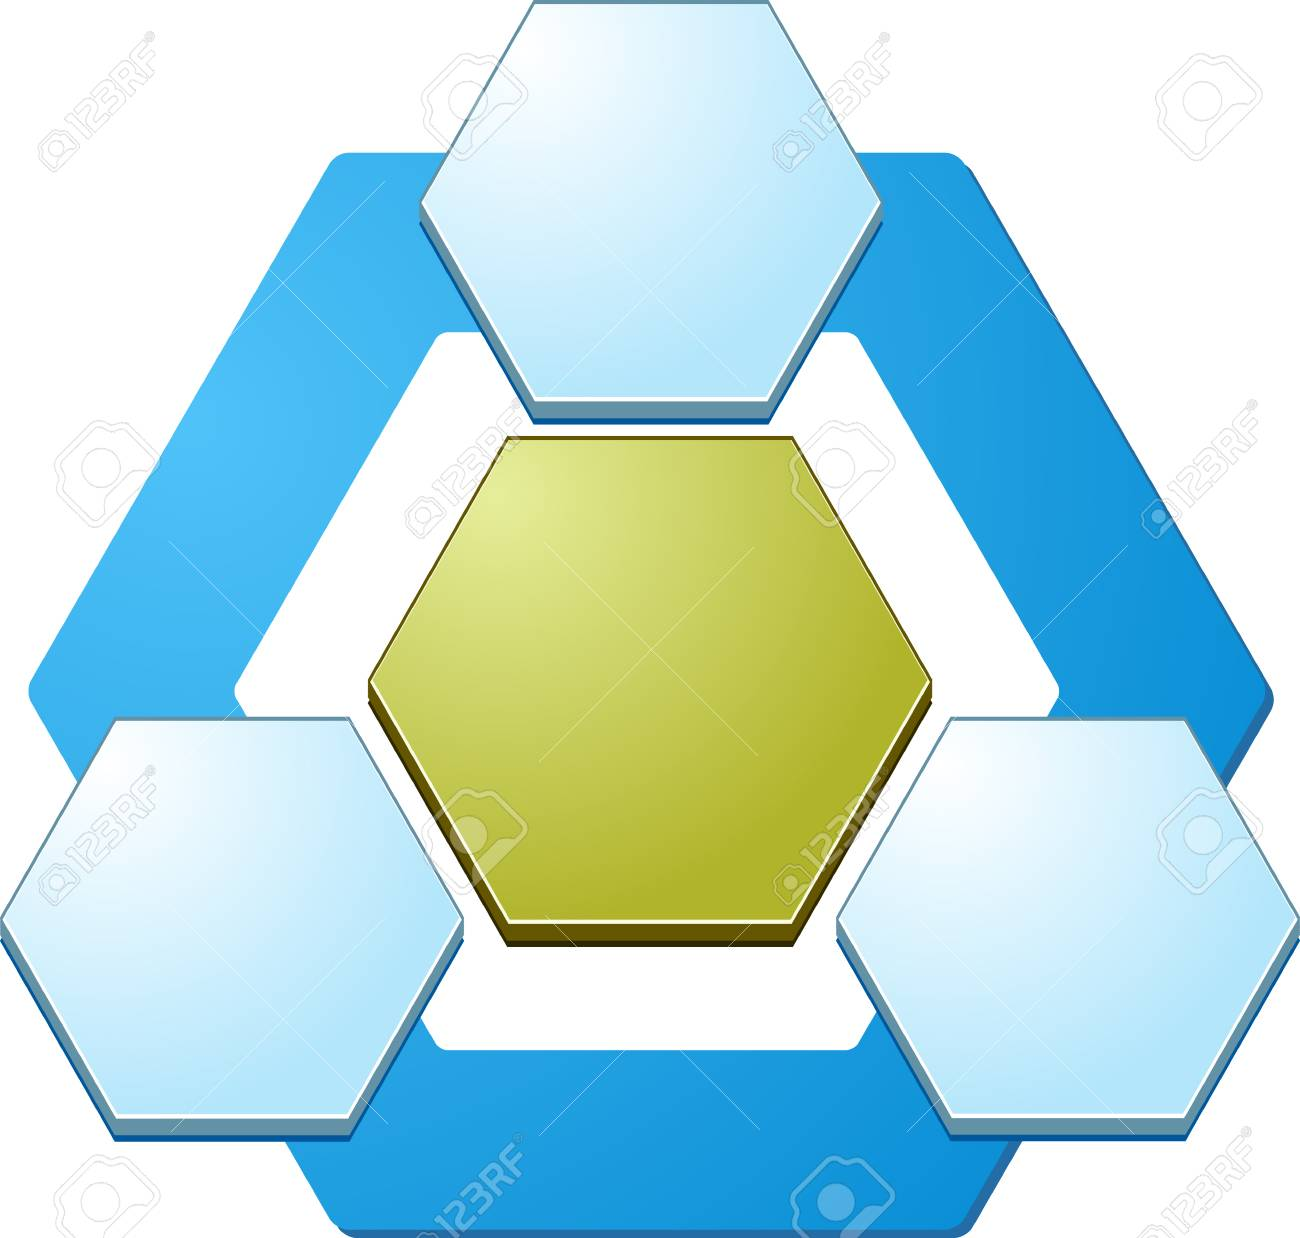 Blank business strategy concept relationship diagram illustration blank business strategy concept relationship diagram illustration hexagon shapes three 3 stock illustration 40388649 ccuart Gallery